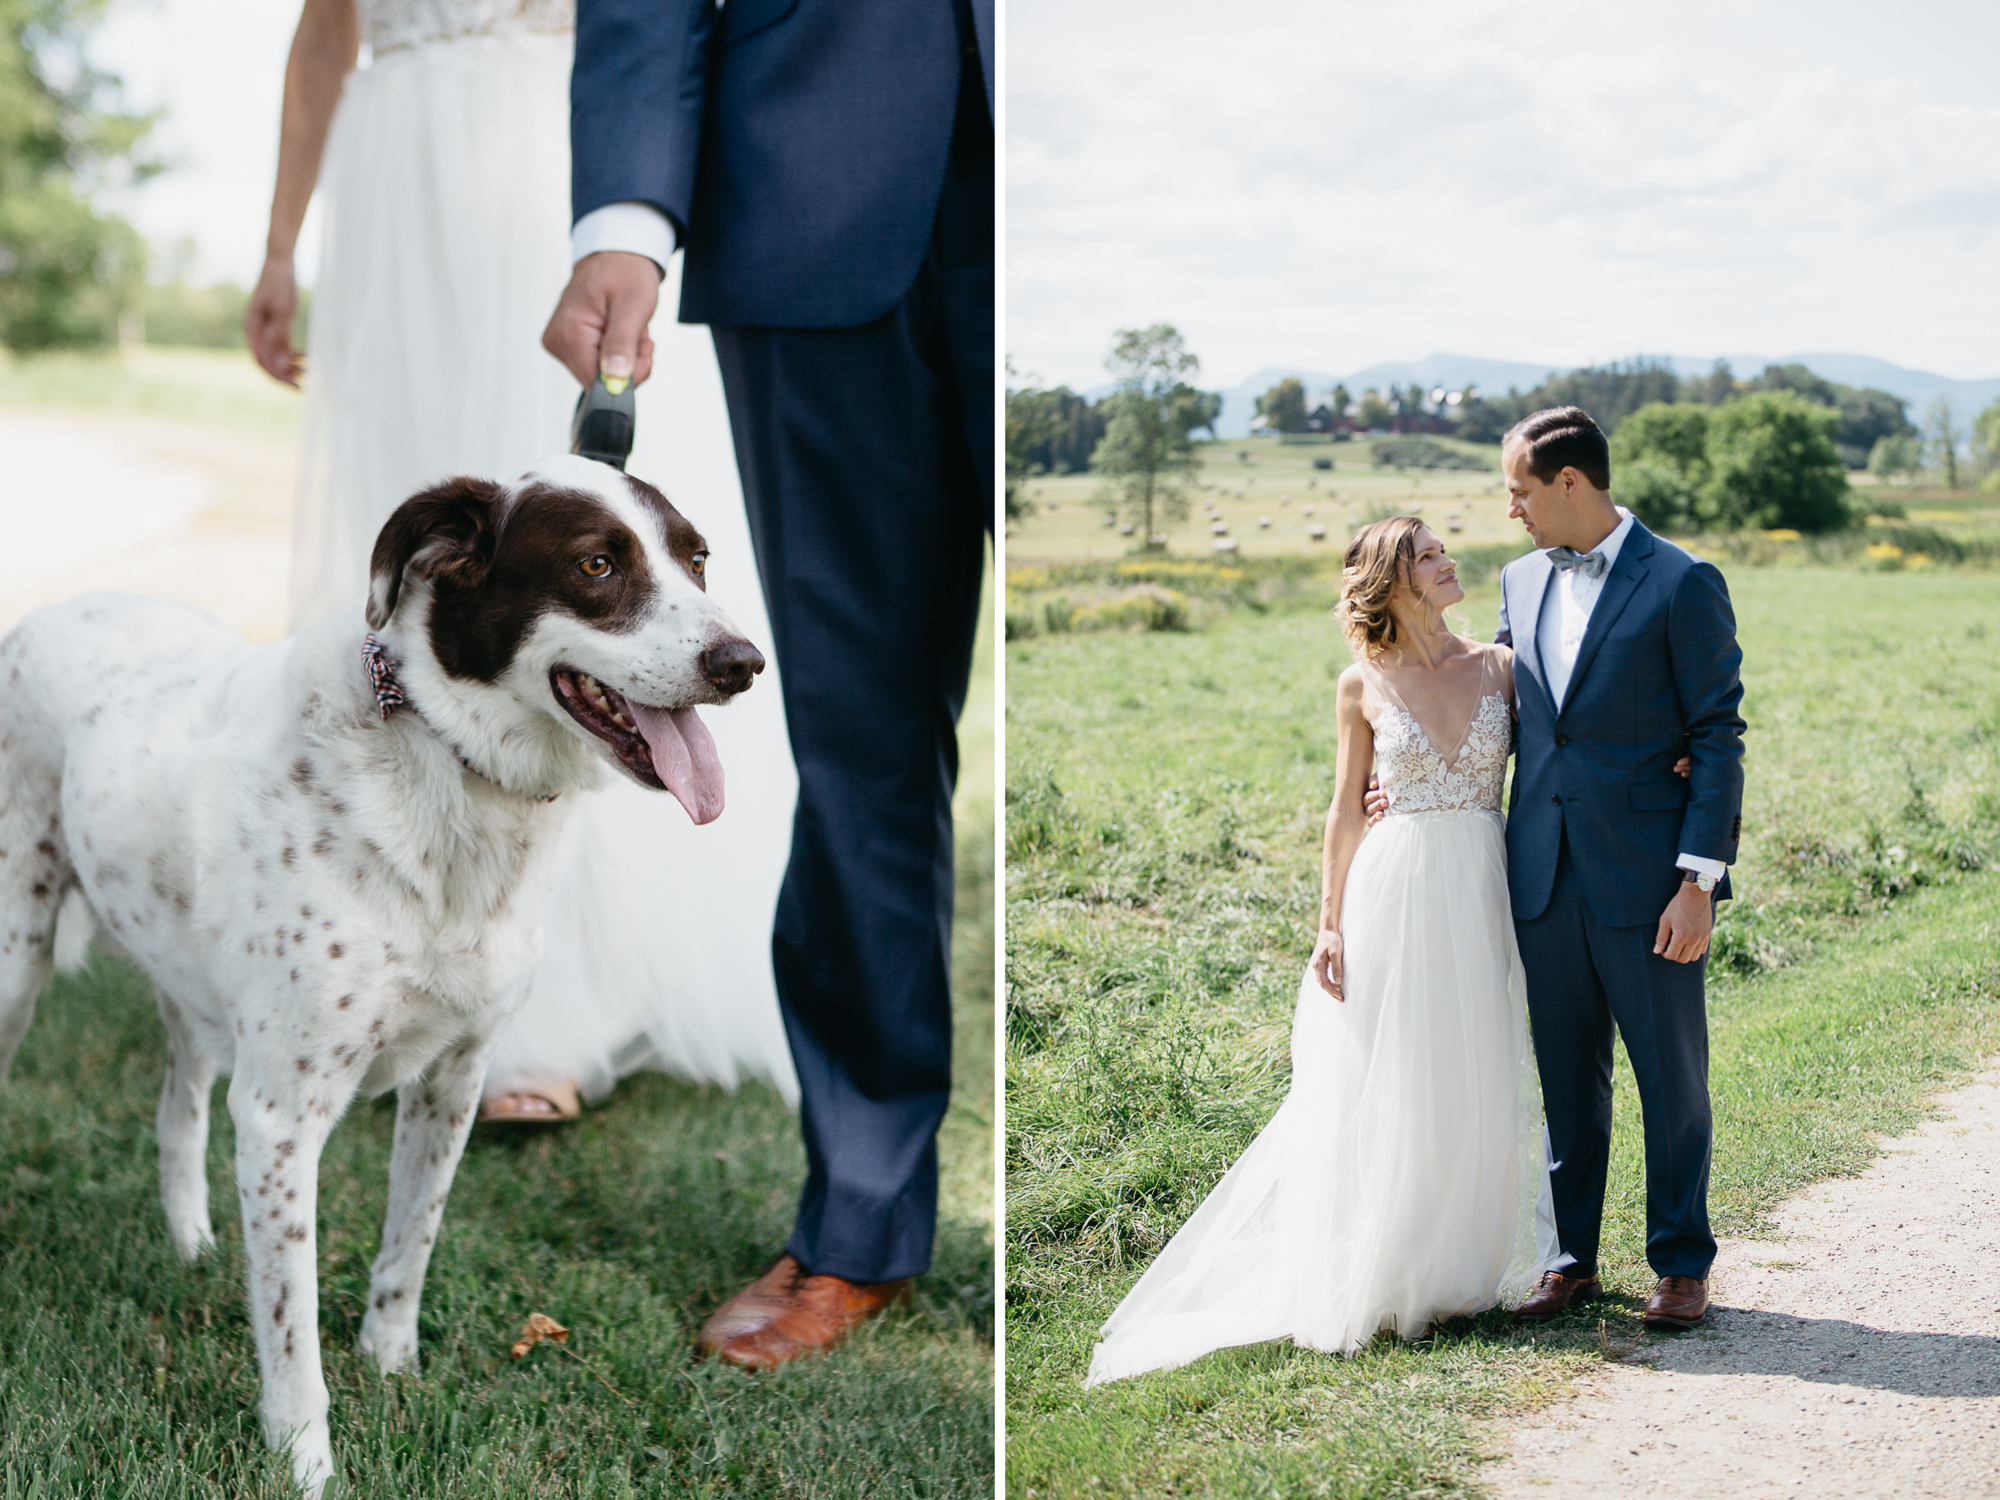 AlyssaErich_Shelburne_Farms_Coach_Barn_Wedding_Vermont_012.jpg